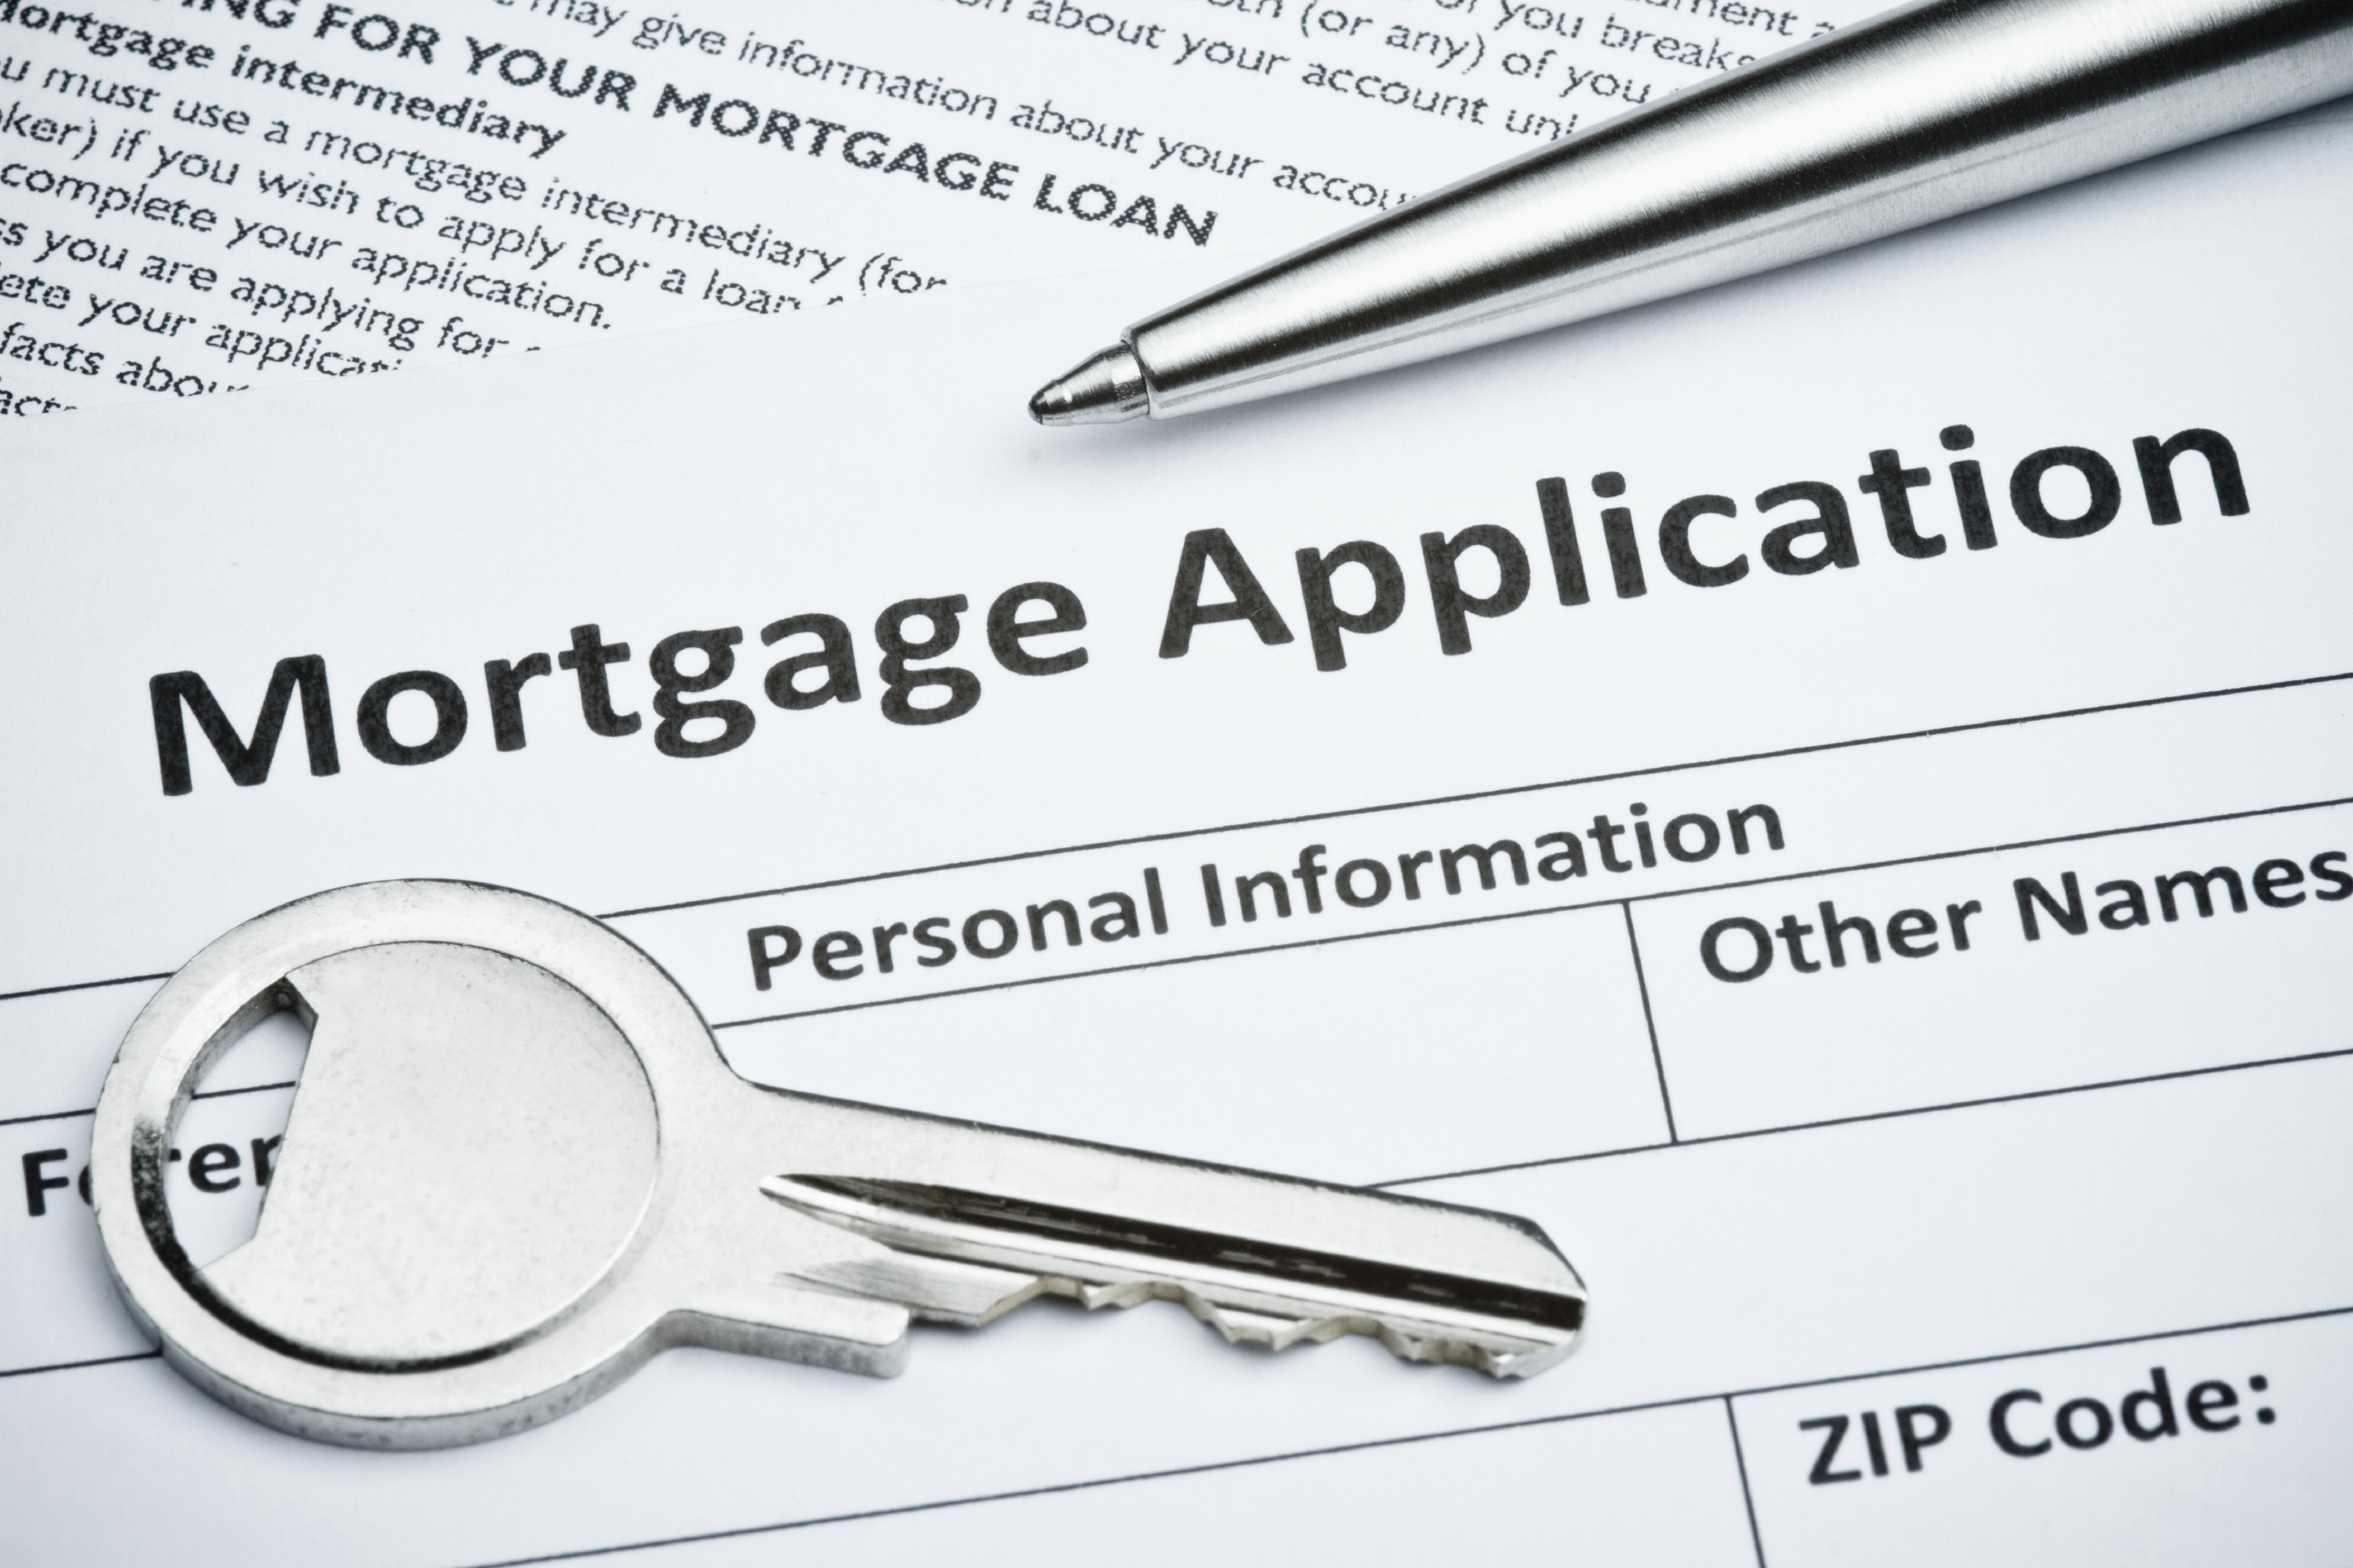 Buy-to-let mortgage rates set to fall… - https://roomslocal.co.uk/blog/buy-to-let-mortgage-rates-set-to-fall #mortgage #rates #fall